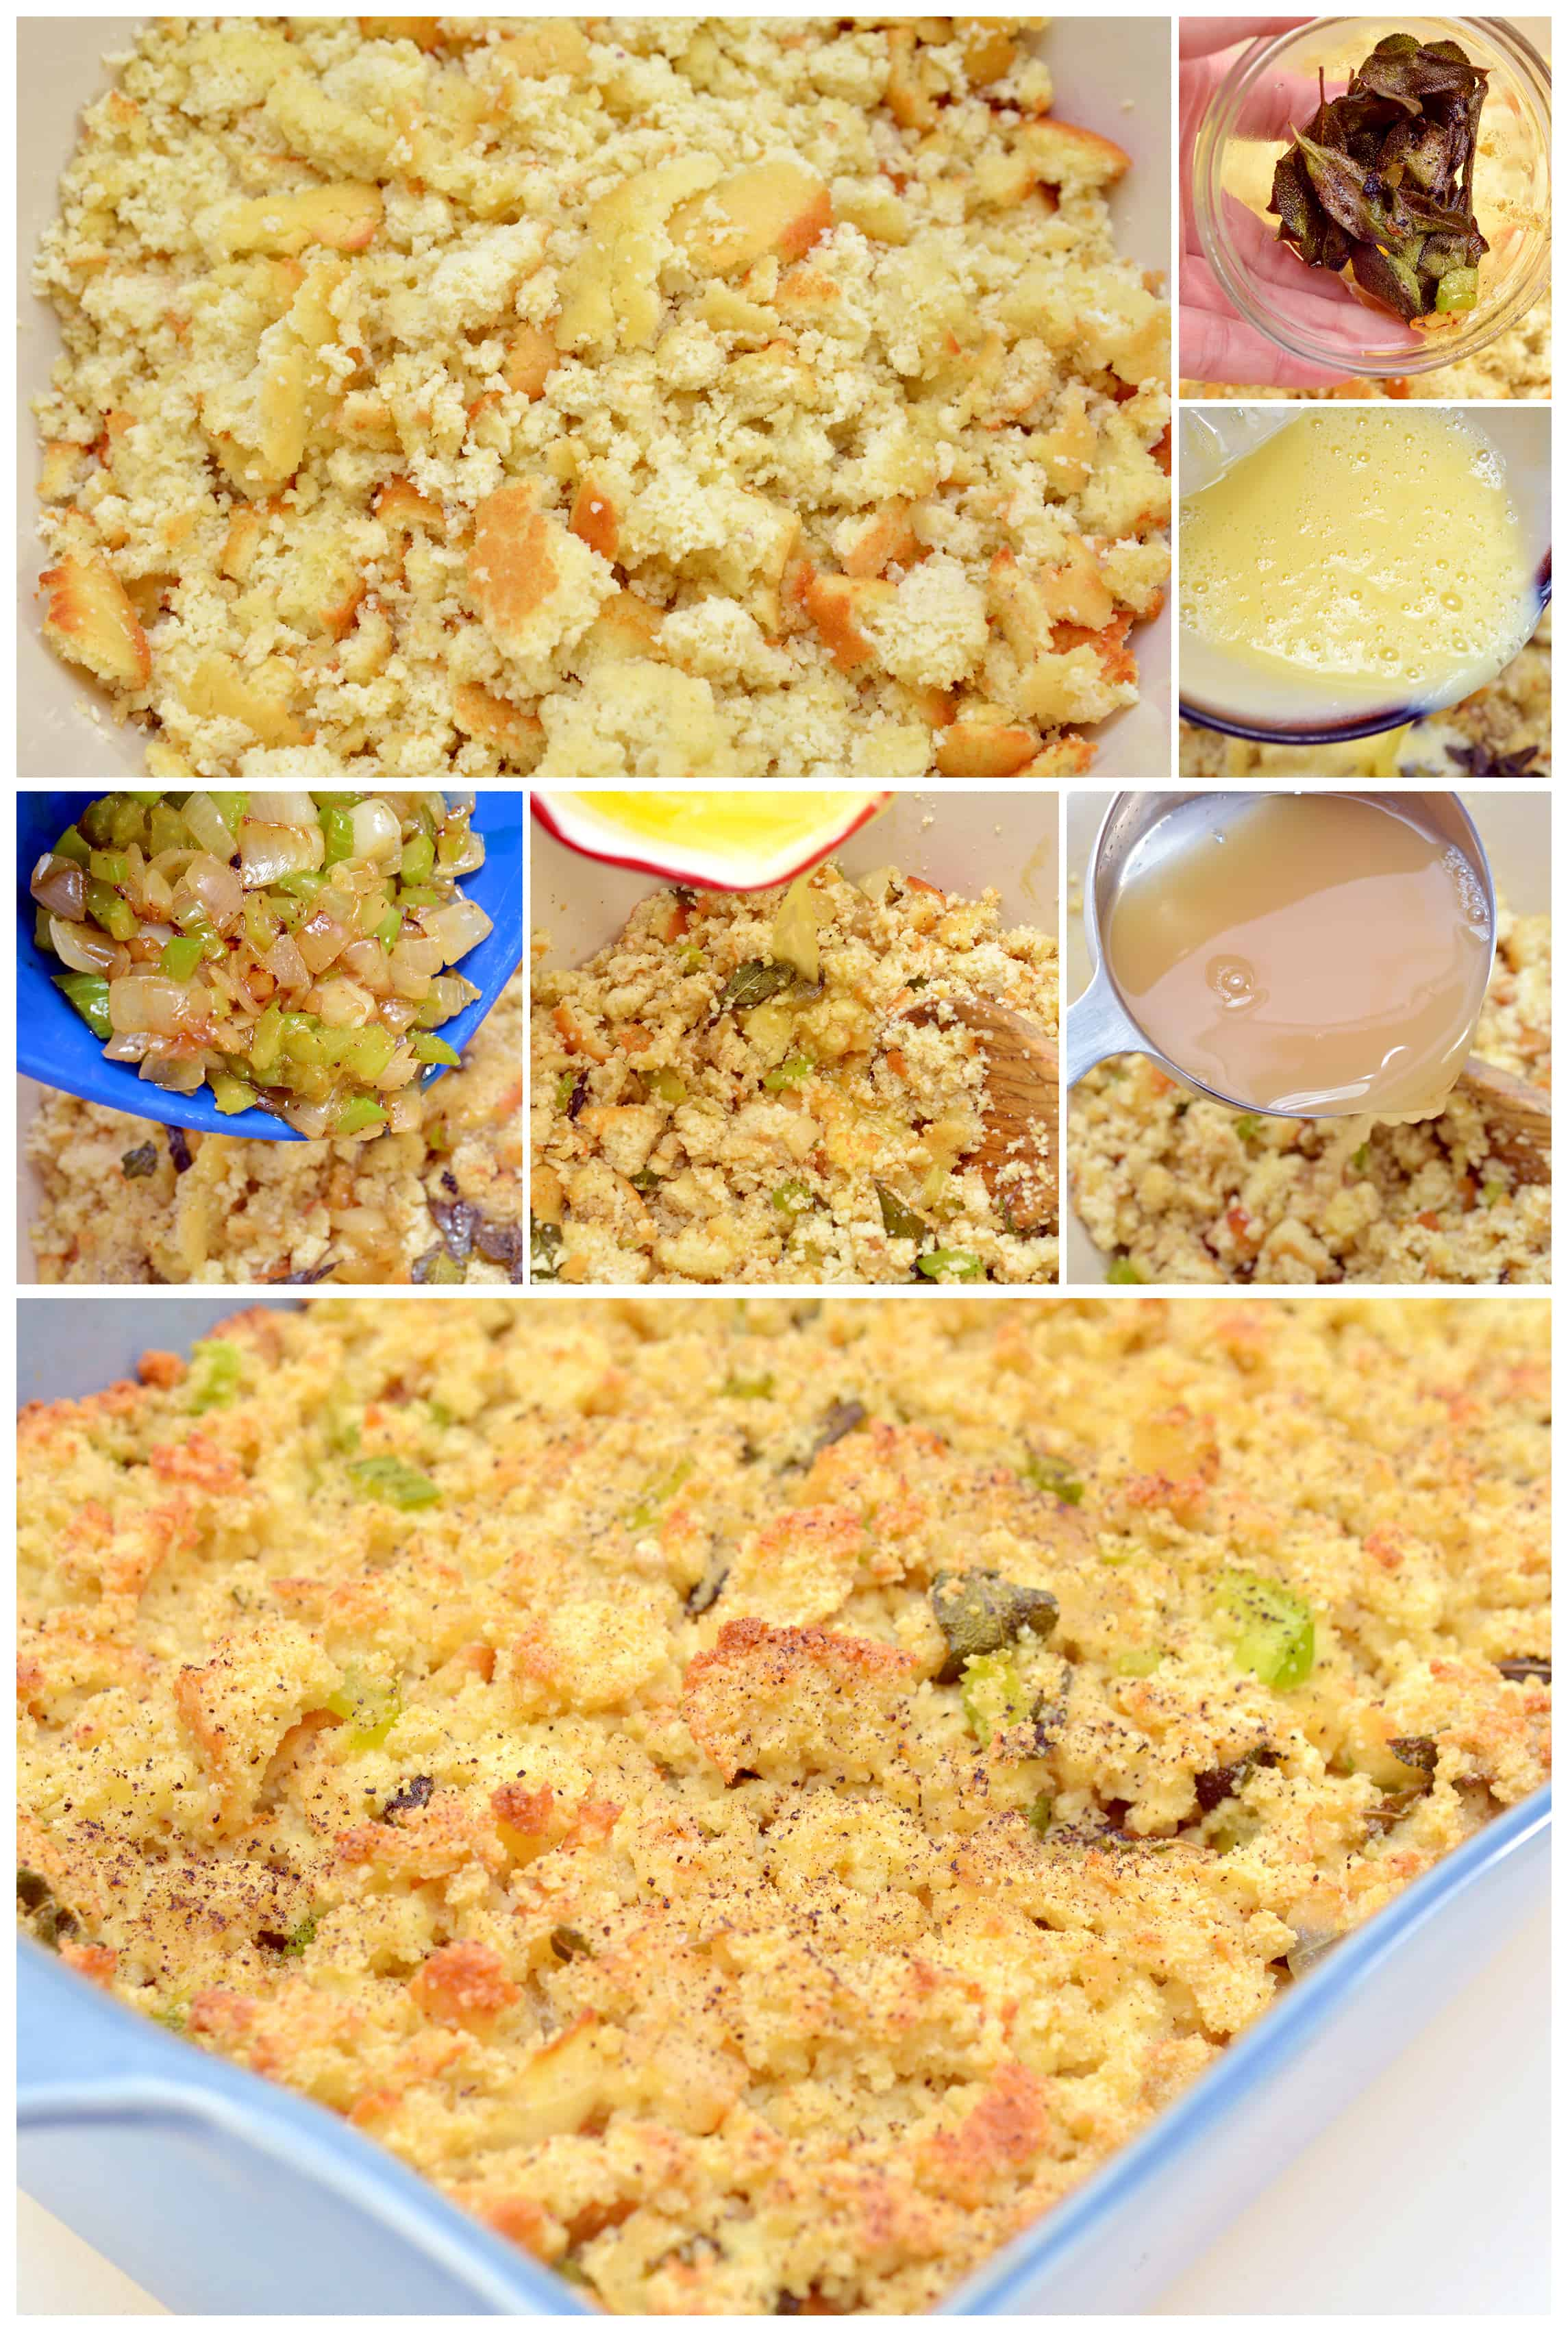 step by step making the stuffing